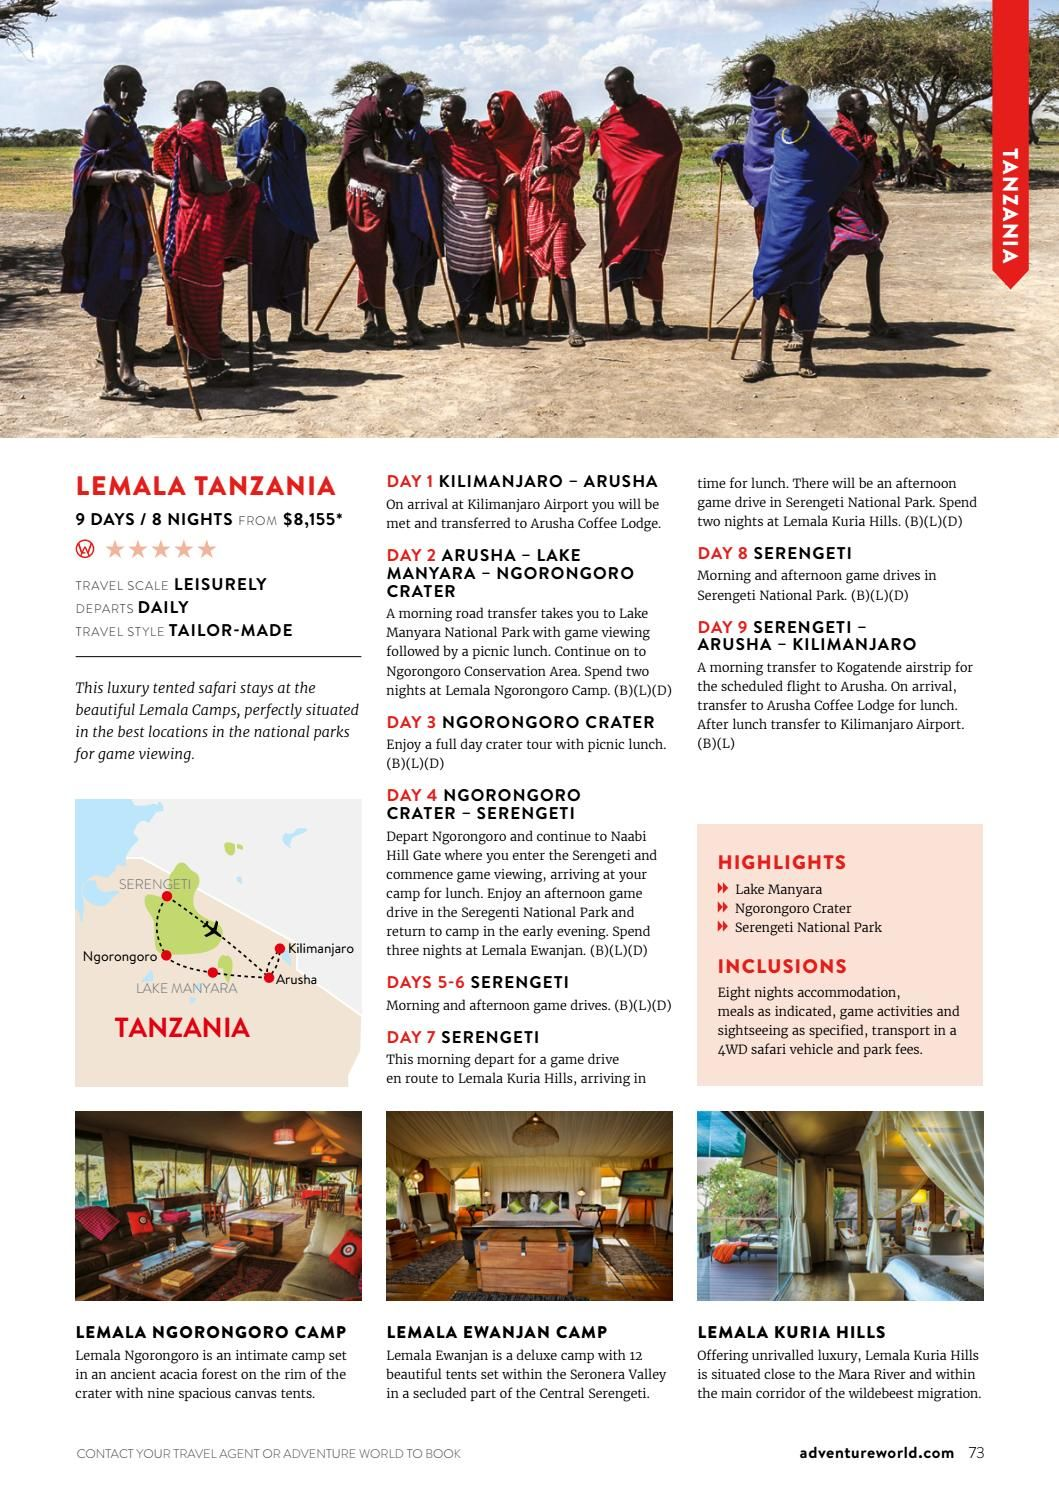 Africa, Egypt & Middle East 2017/18 Collection NZ by Adventure World - issuu